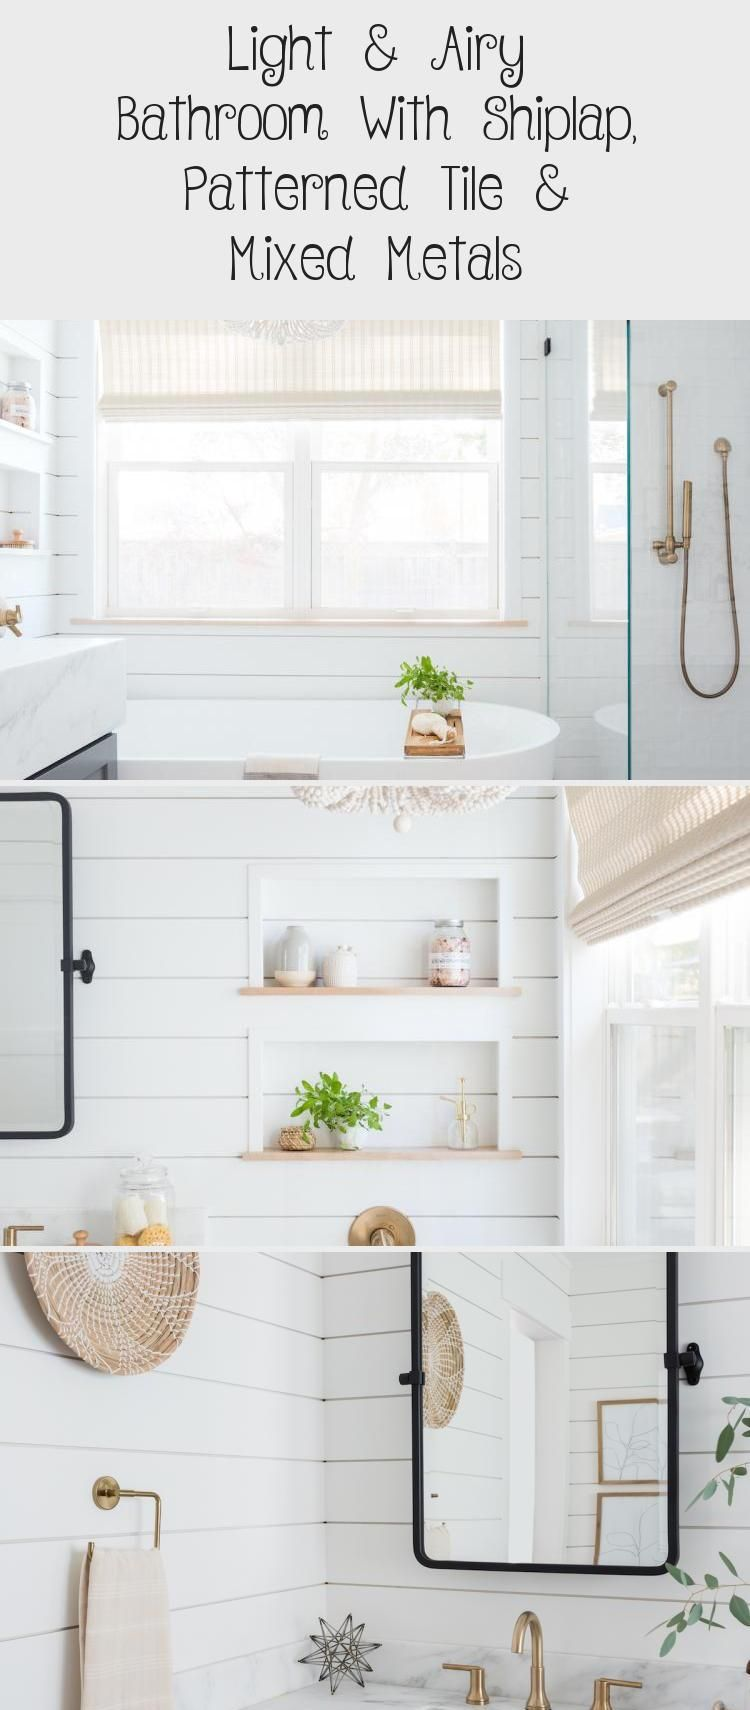 Photo of Light & Airy Bathroom With Shiplap, Patterned Tile & Mixed Metals – Decorations